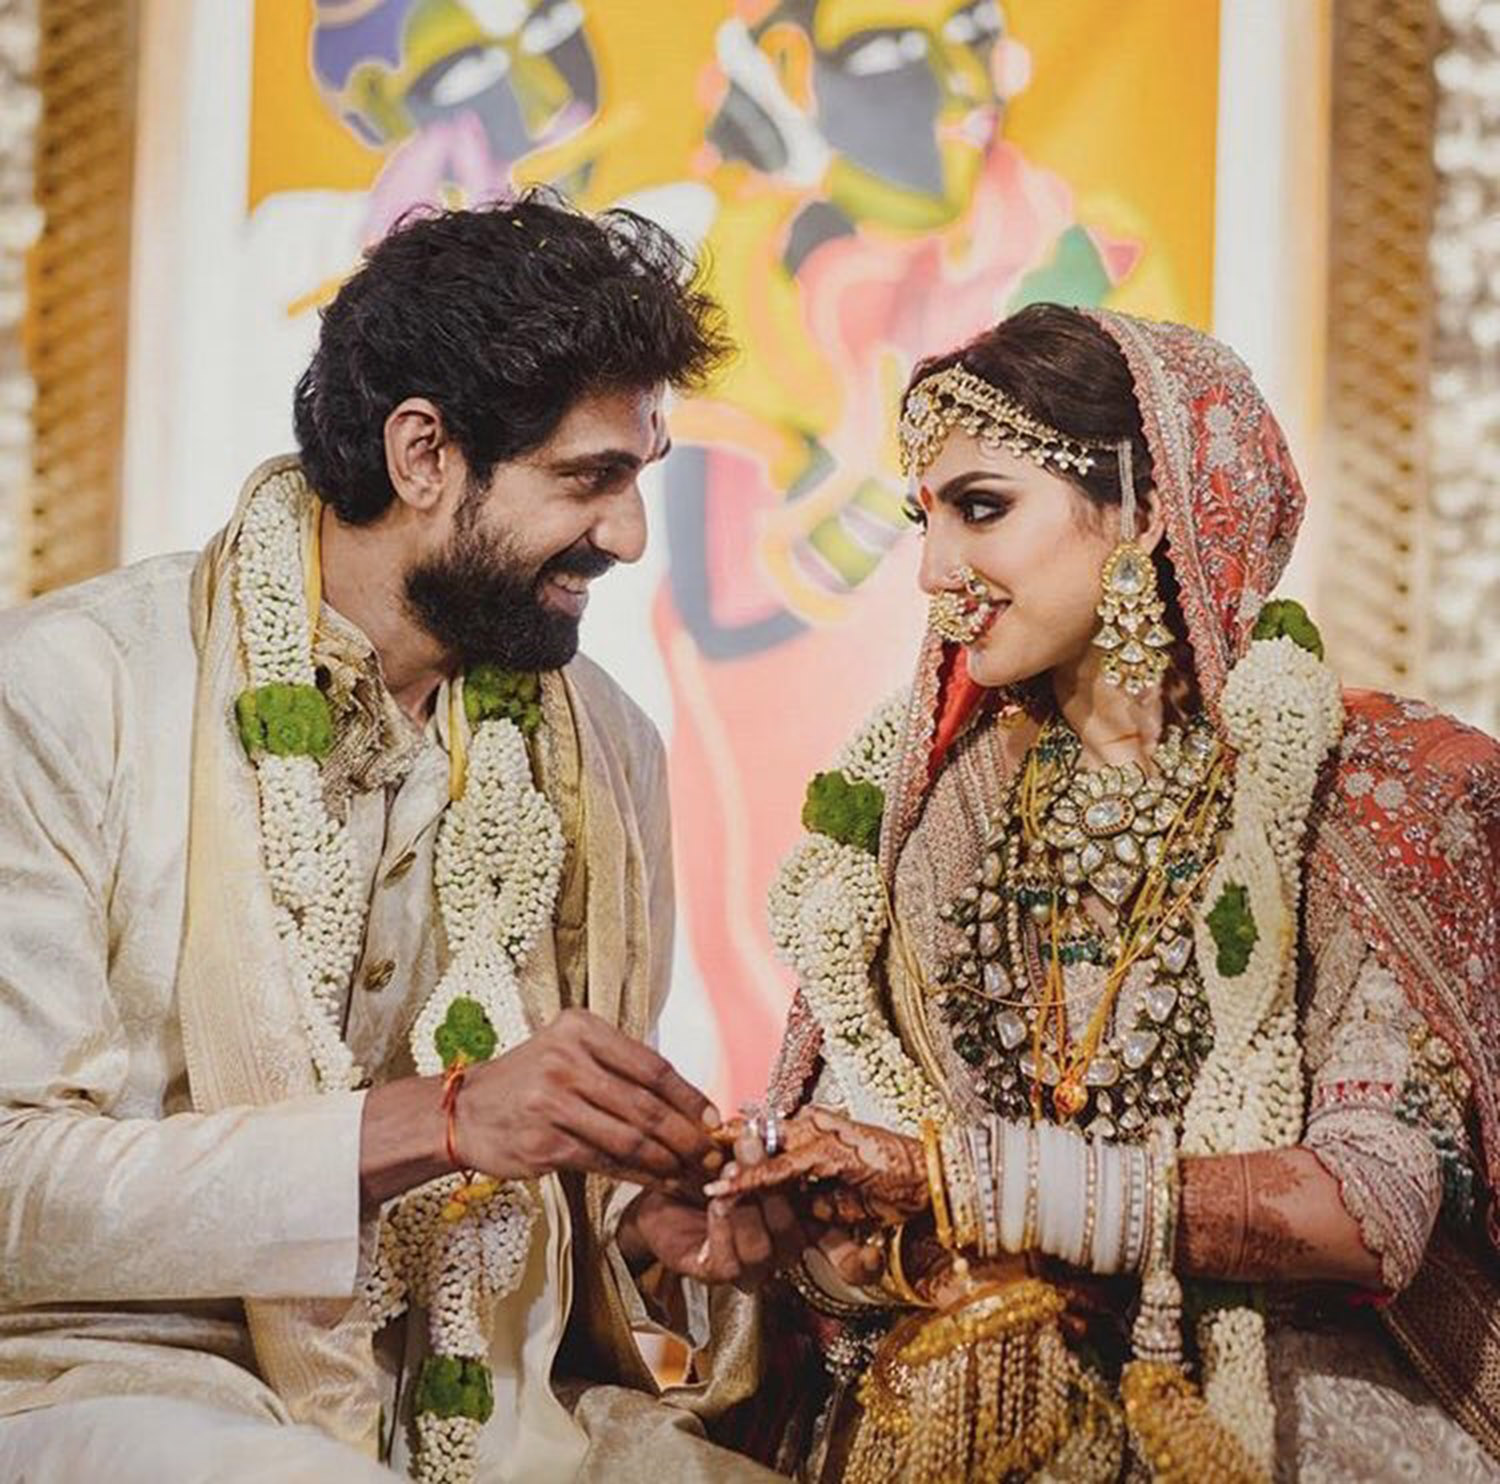 Rana Daggubati reception photos Rana Daggubati wedding reception stills ,Rana Daggubati wedding receptio images ,Rana Daggubati wedding stills ,Rana Daggubati wife ,Rana Daggubati family photos ,Rana Daggubati couple stills;